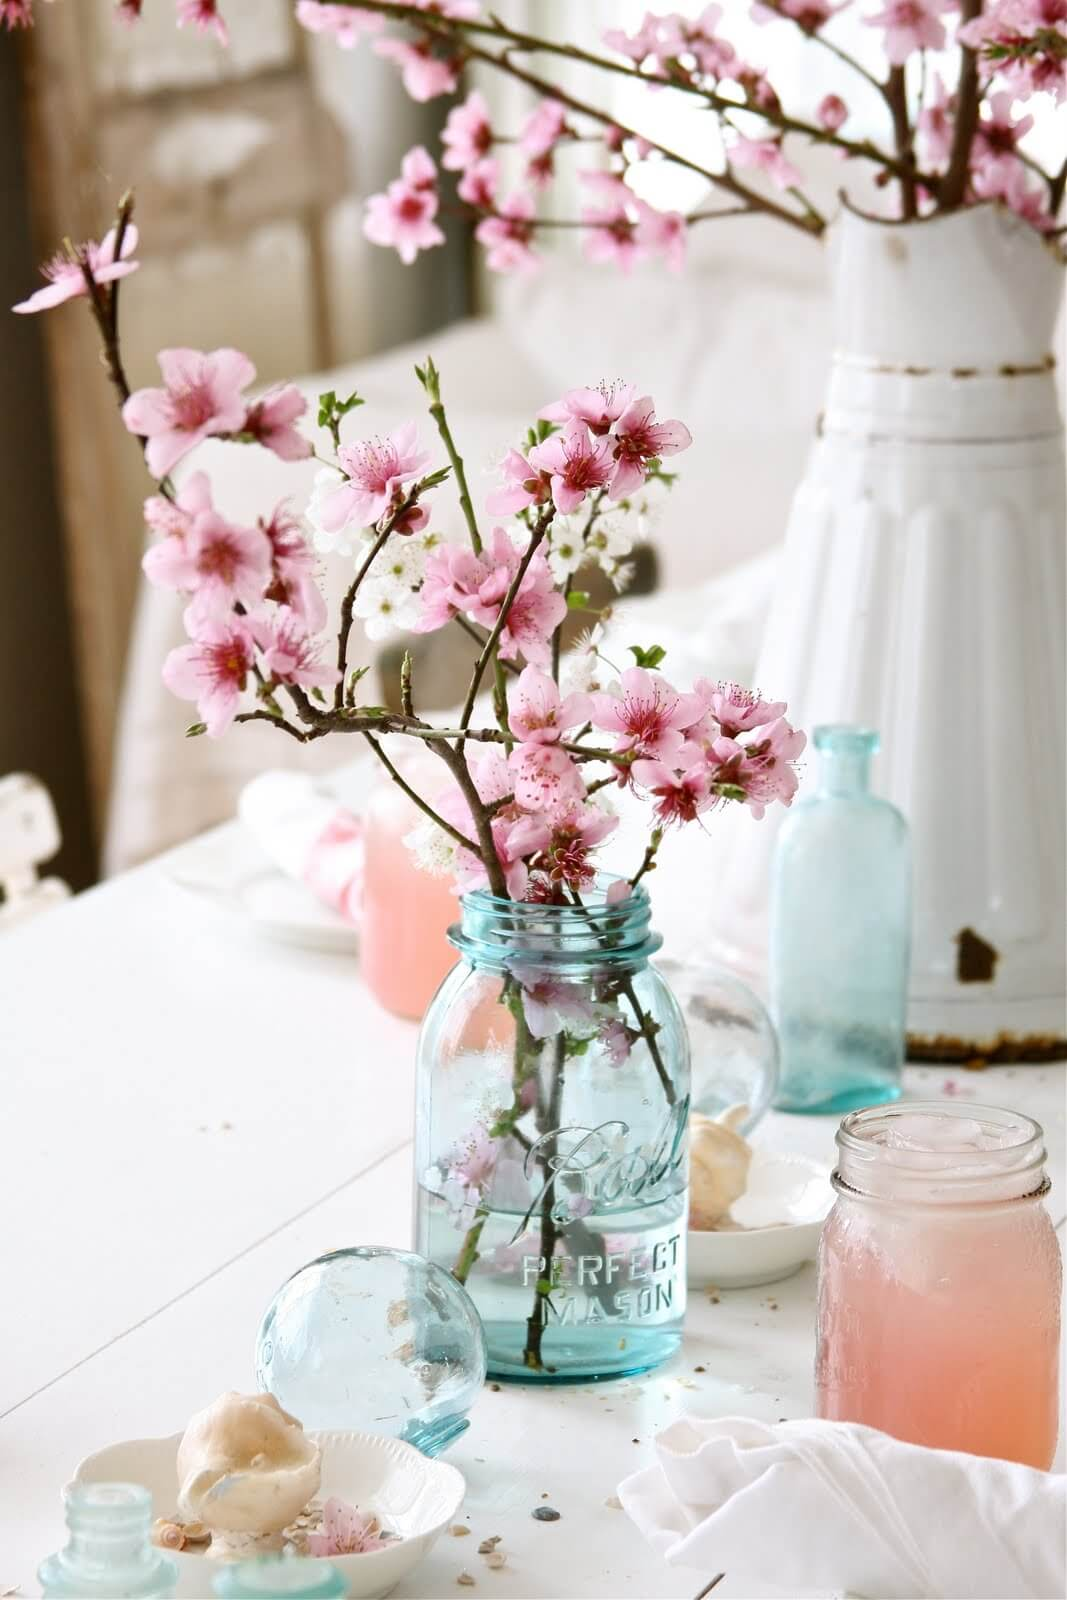 Simple Cherry Blossoms in a Mason Jar